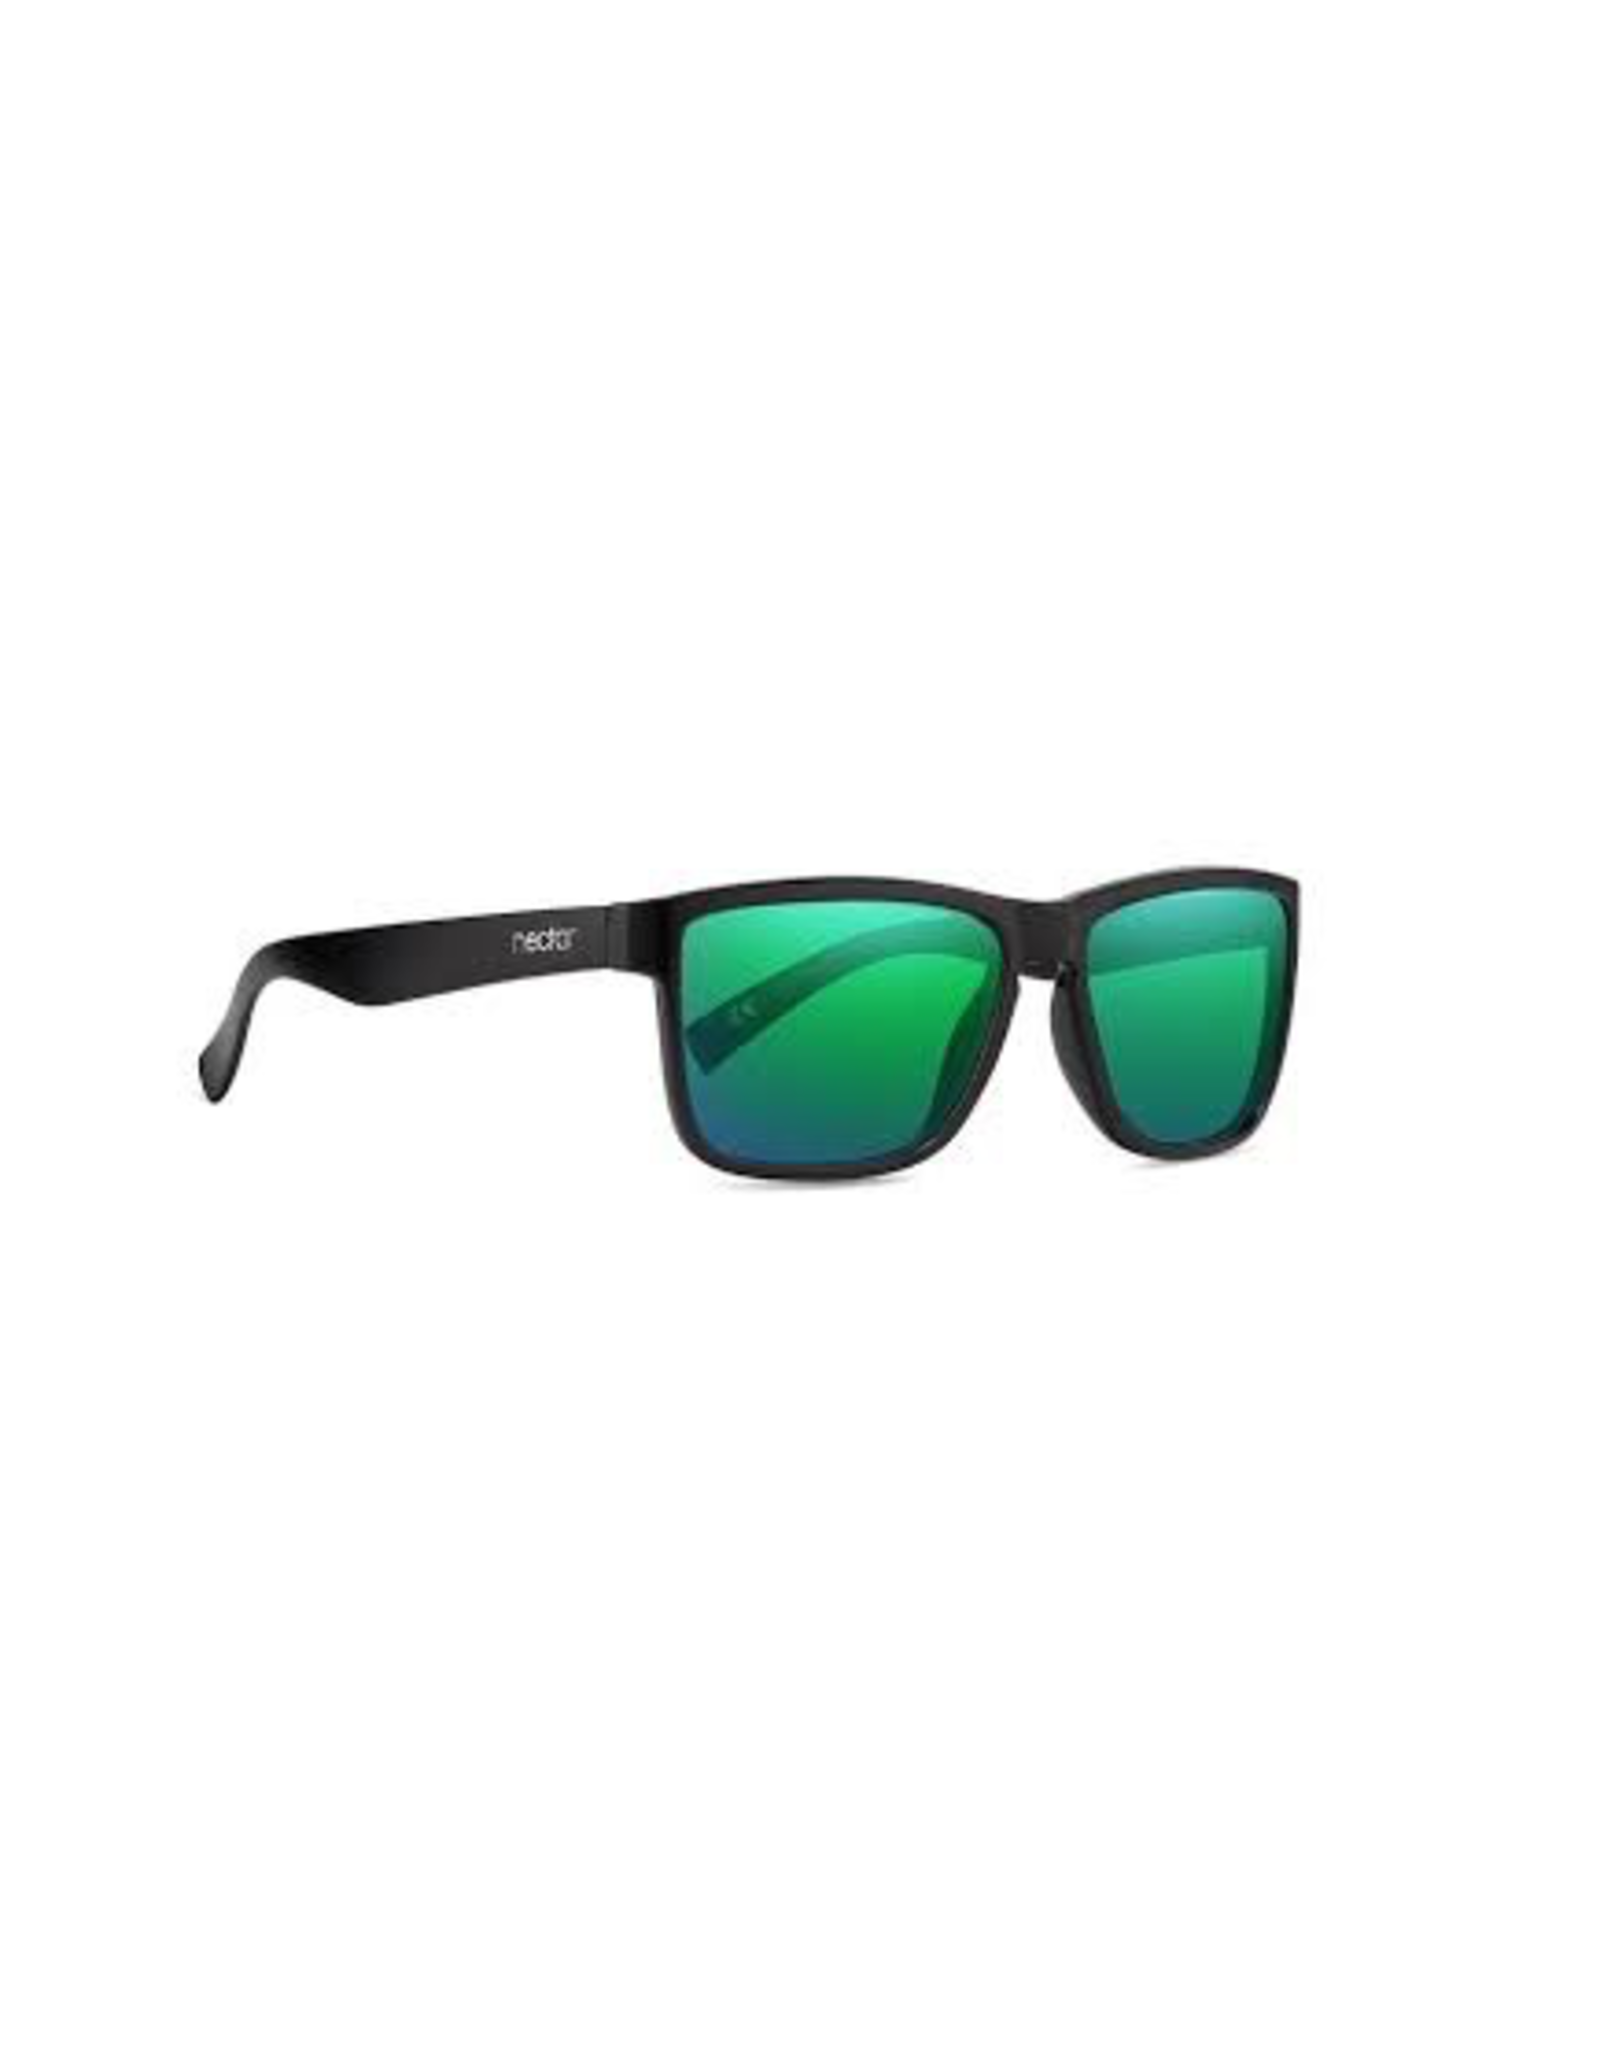 NECTAR NECTAR SUNGLASSES POLARIZED PALMS GLOSSY BLACK FRAME - GREEN LENS